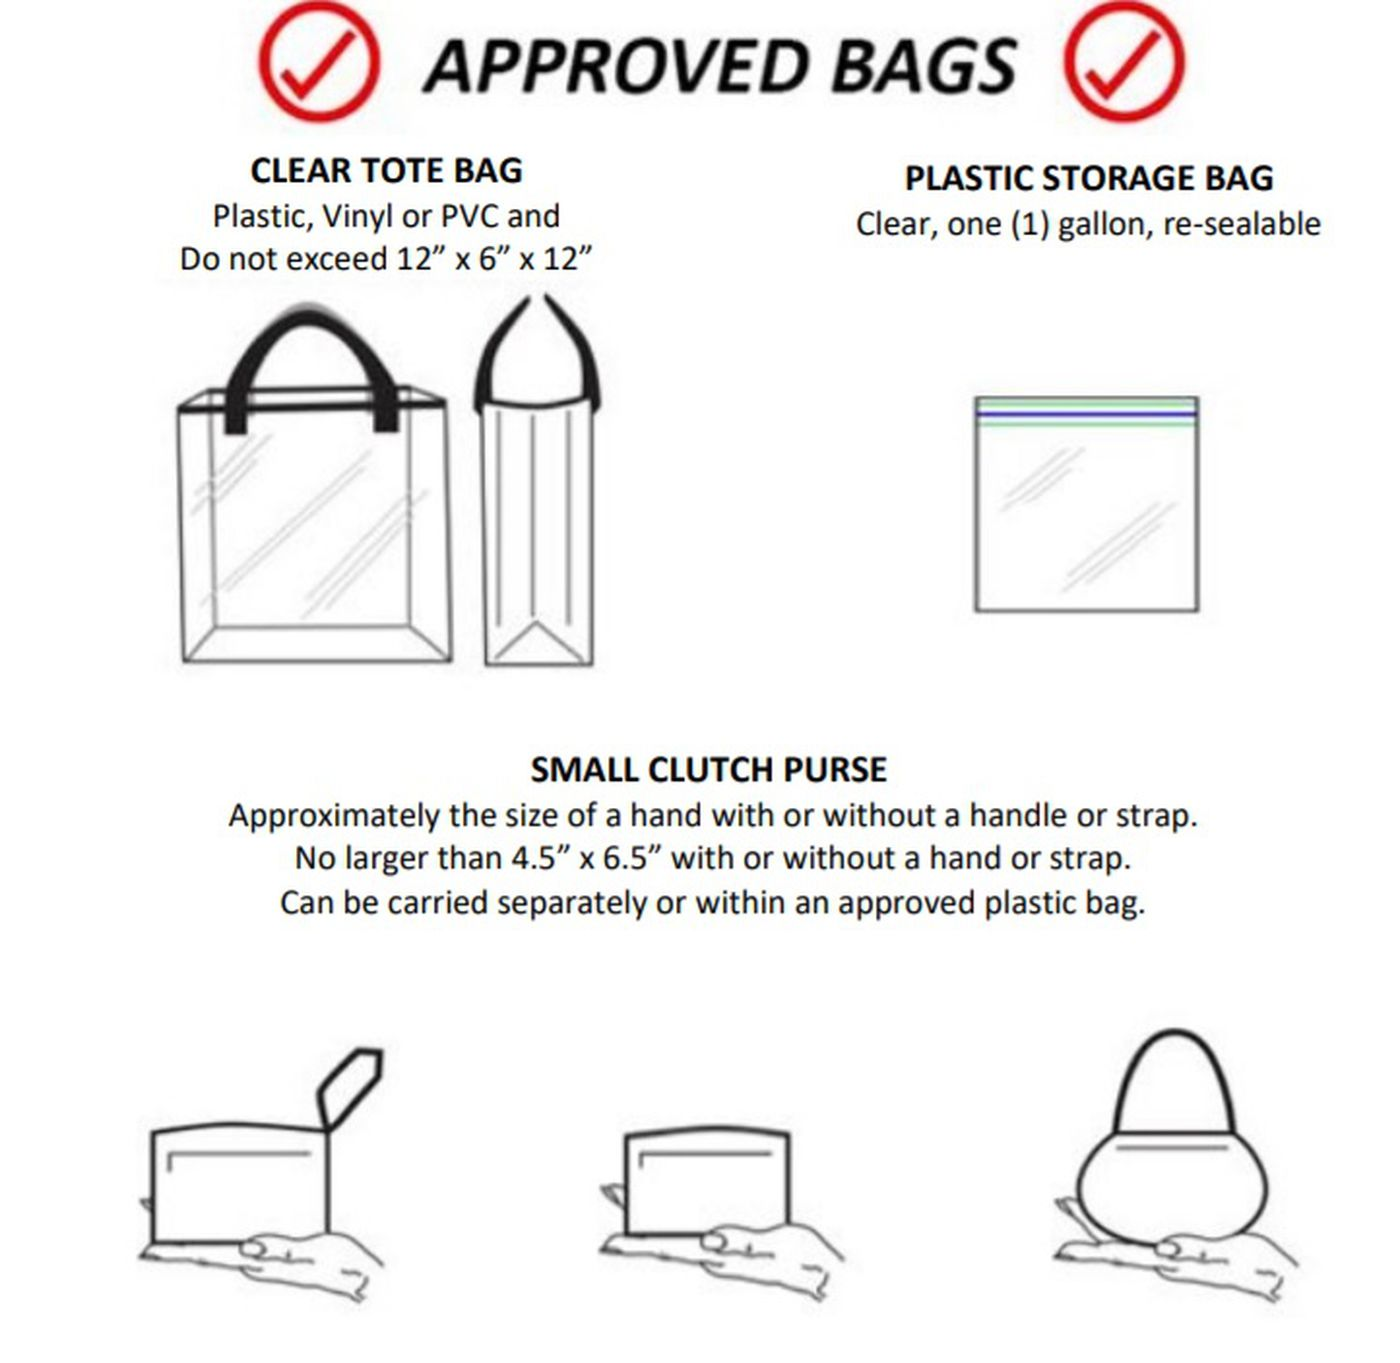 Clear bag policy in effect for Mid-Carolina vs. Chapin